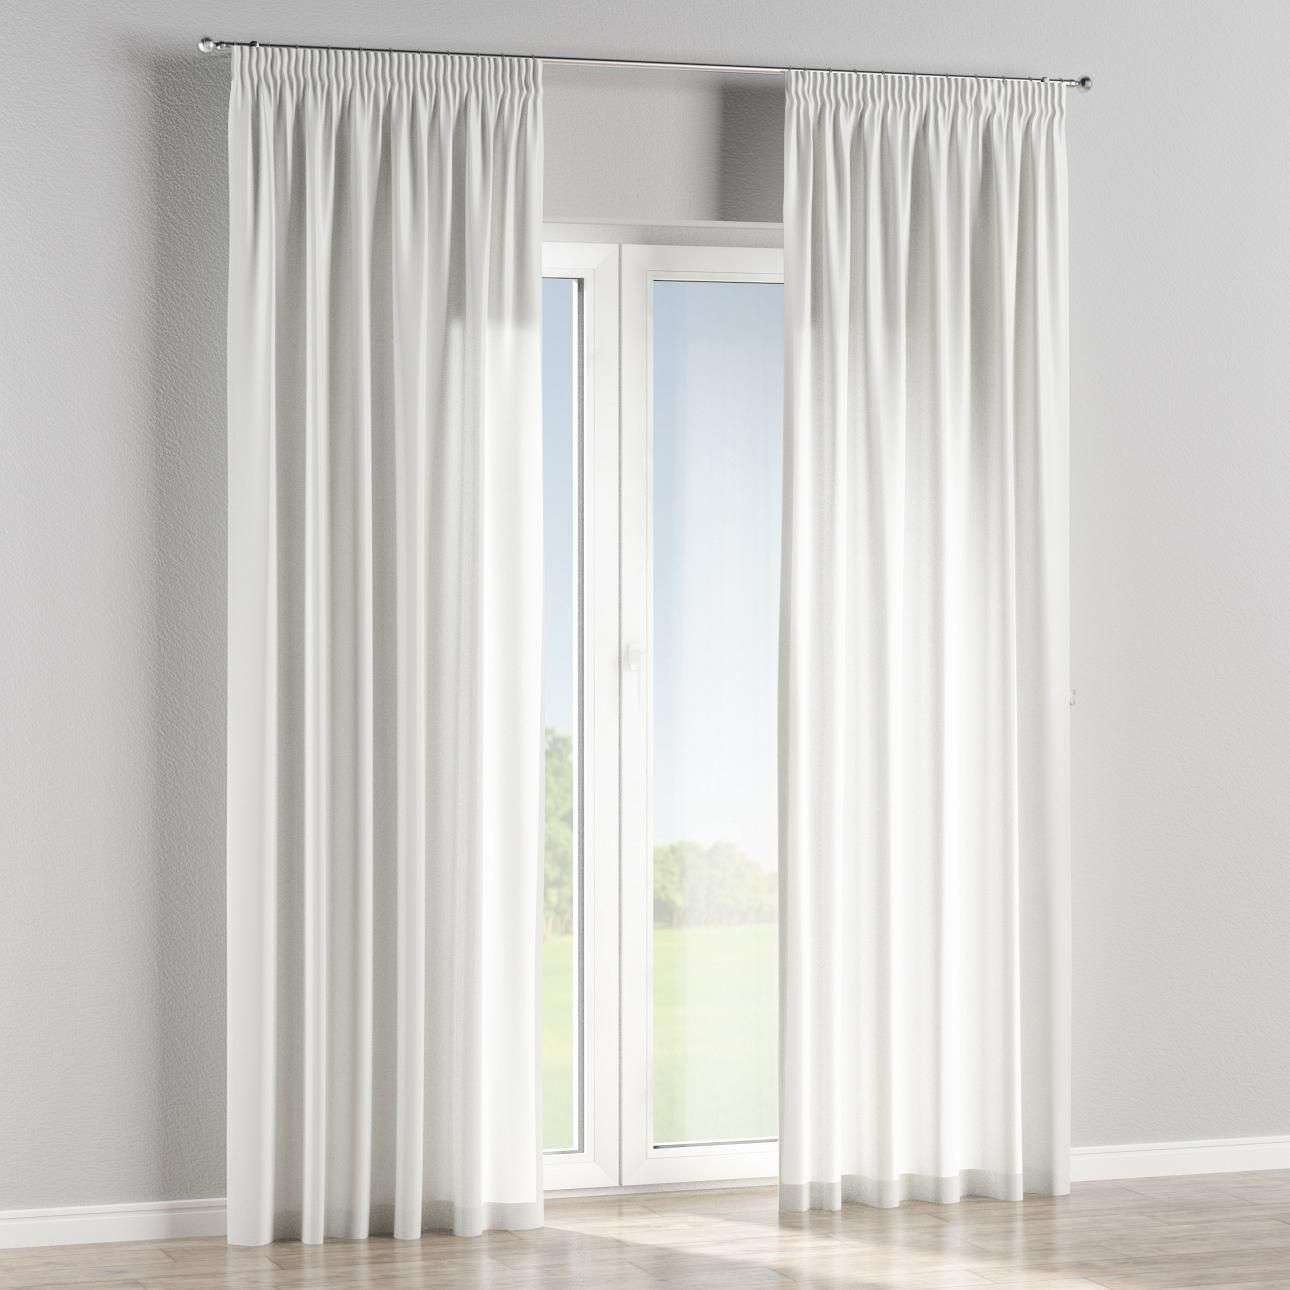 Pencil pleat curtains in collection Freestyle, fabric: 150-05